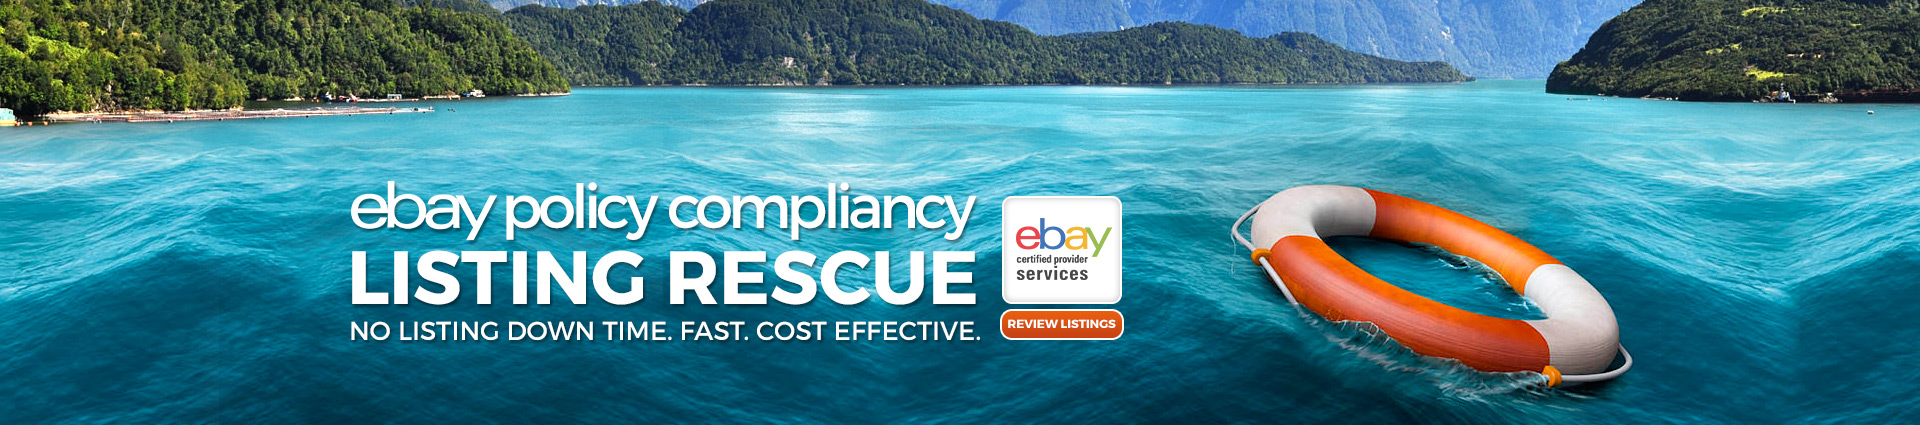 eBay Active Content Listing Rescue: No Listing Downtime. Fast. Cost Effective